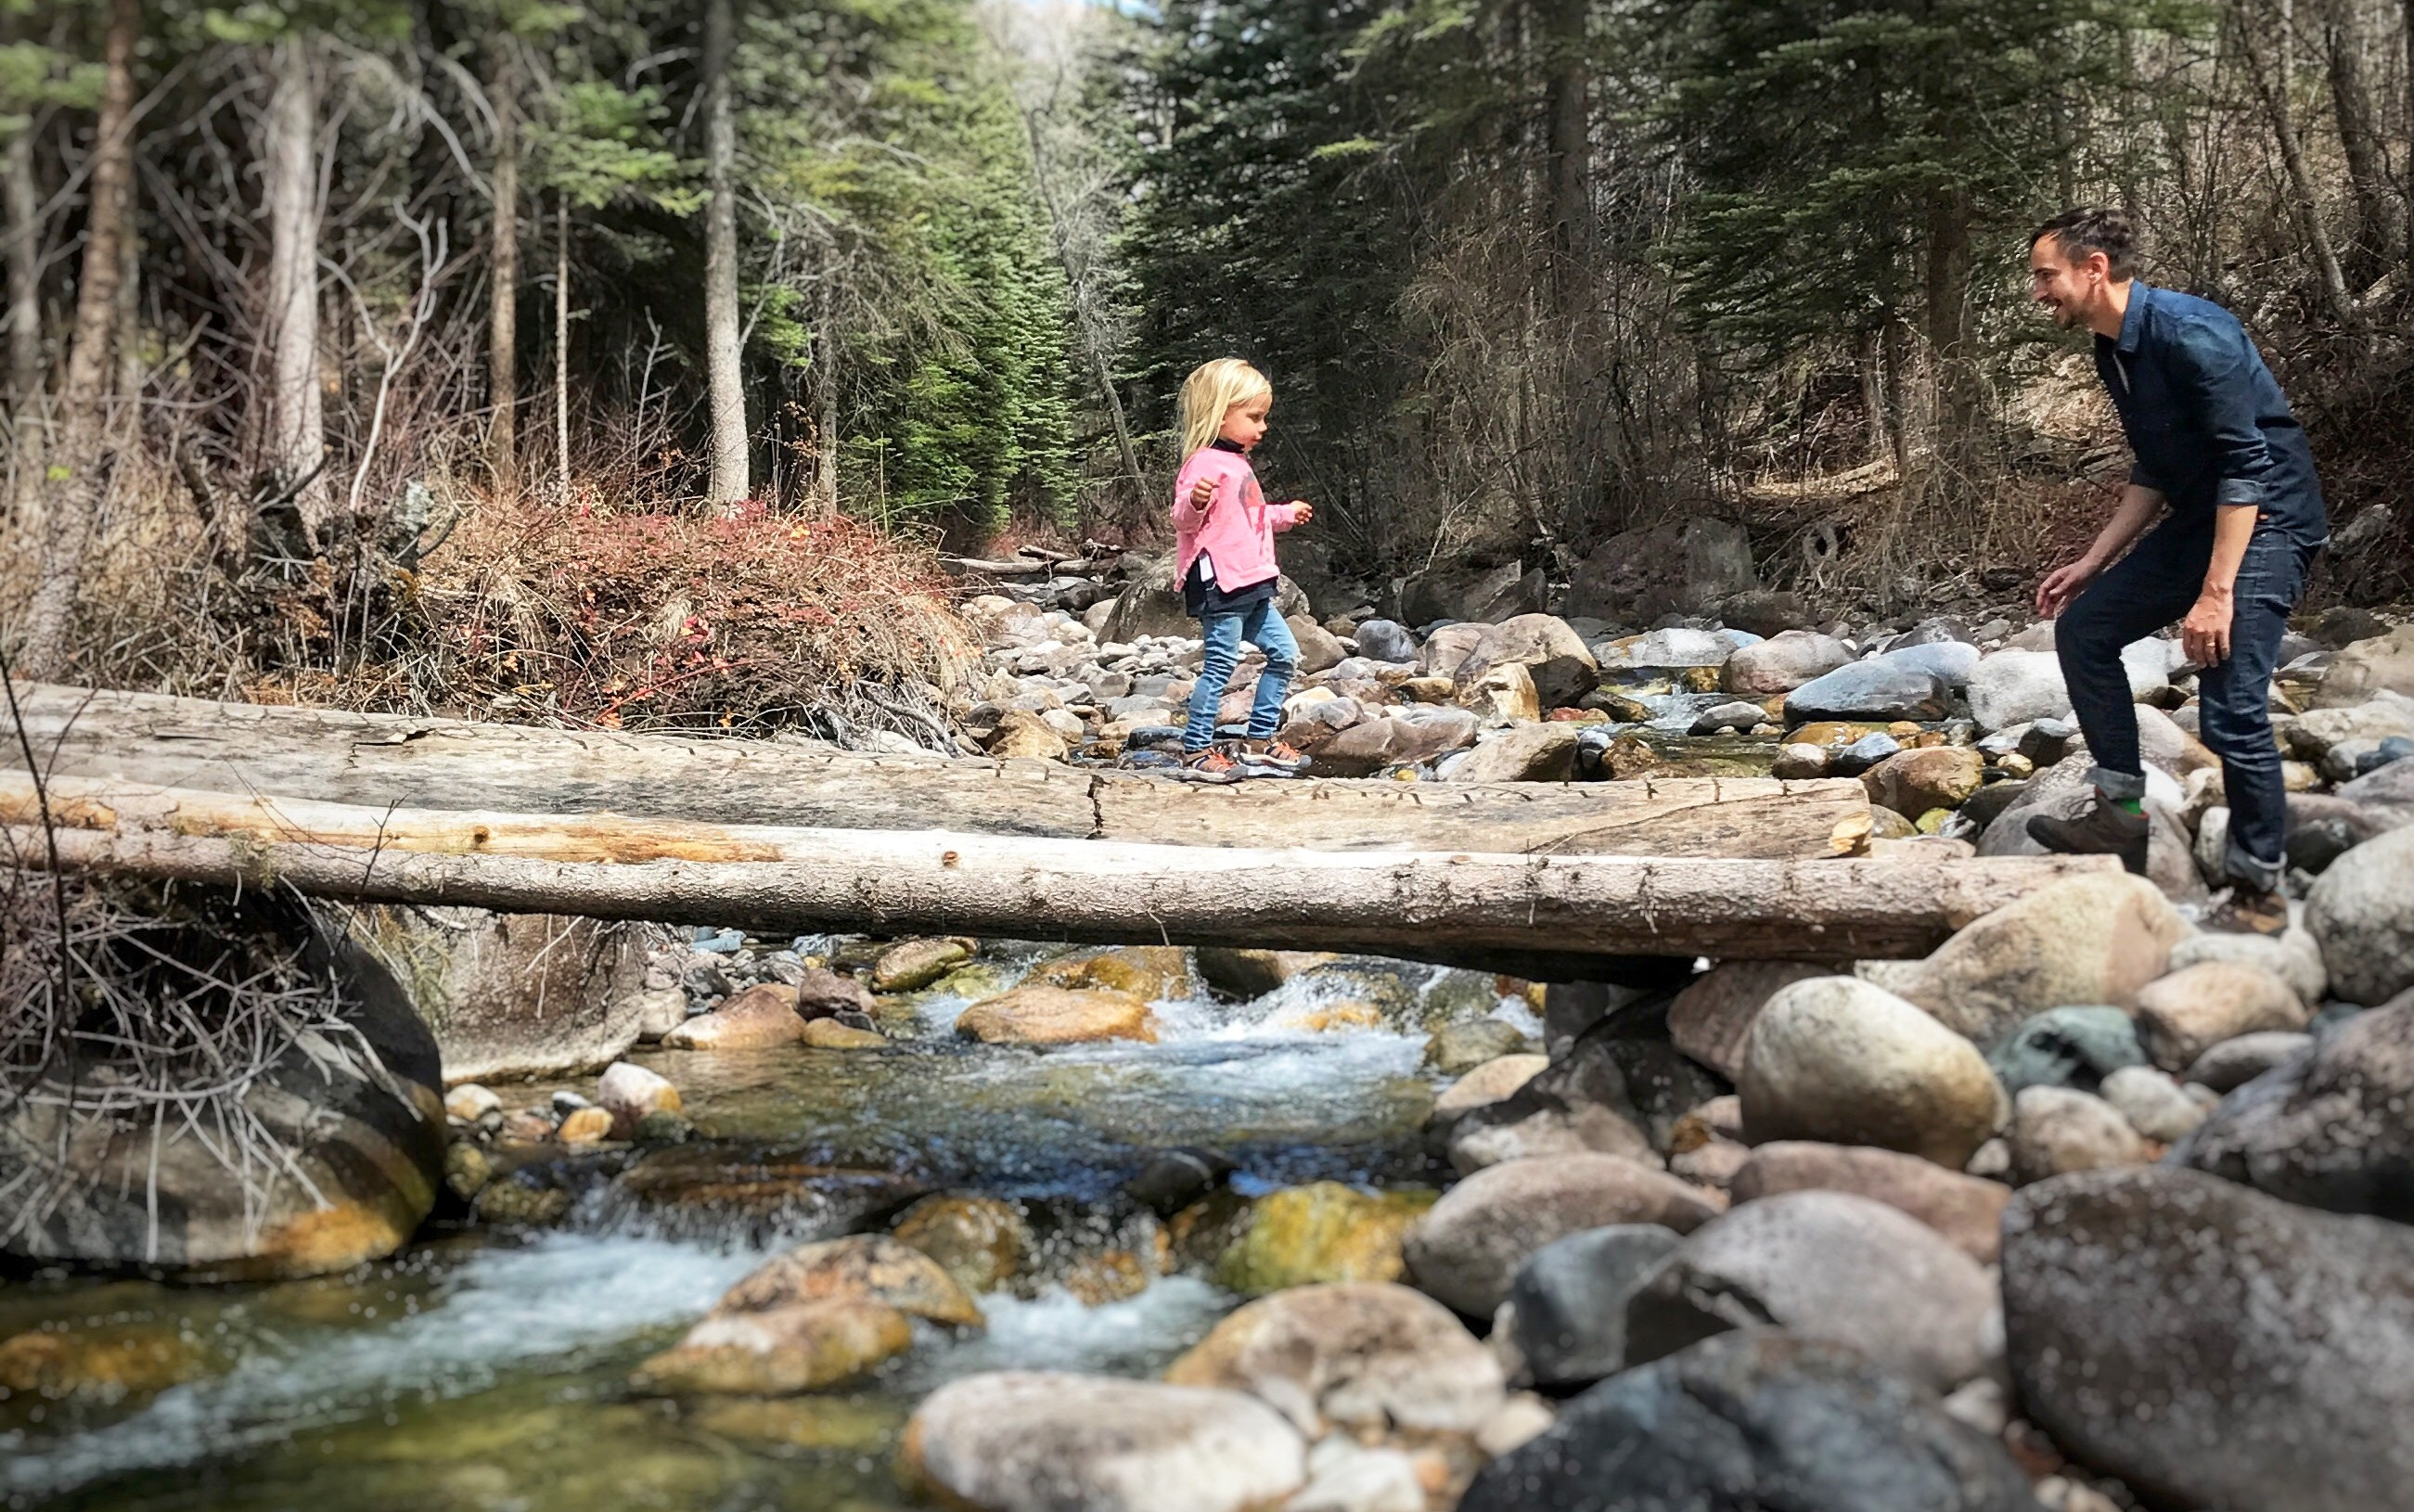 Young girl walks on a log across a stream to her father's waiting arms.